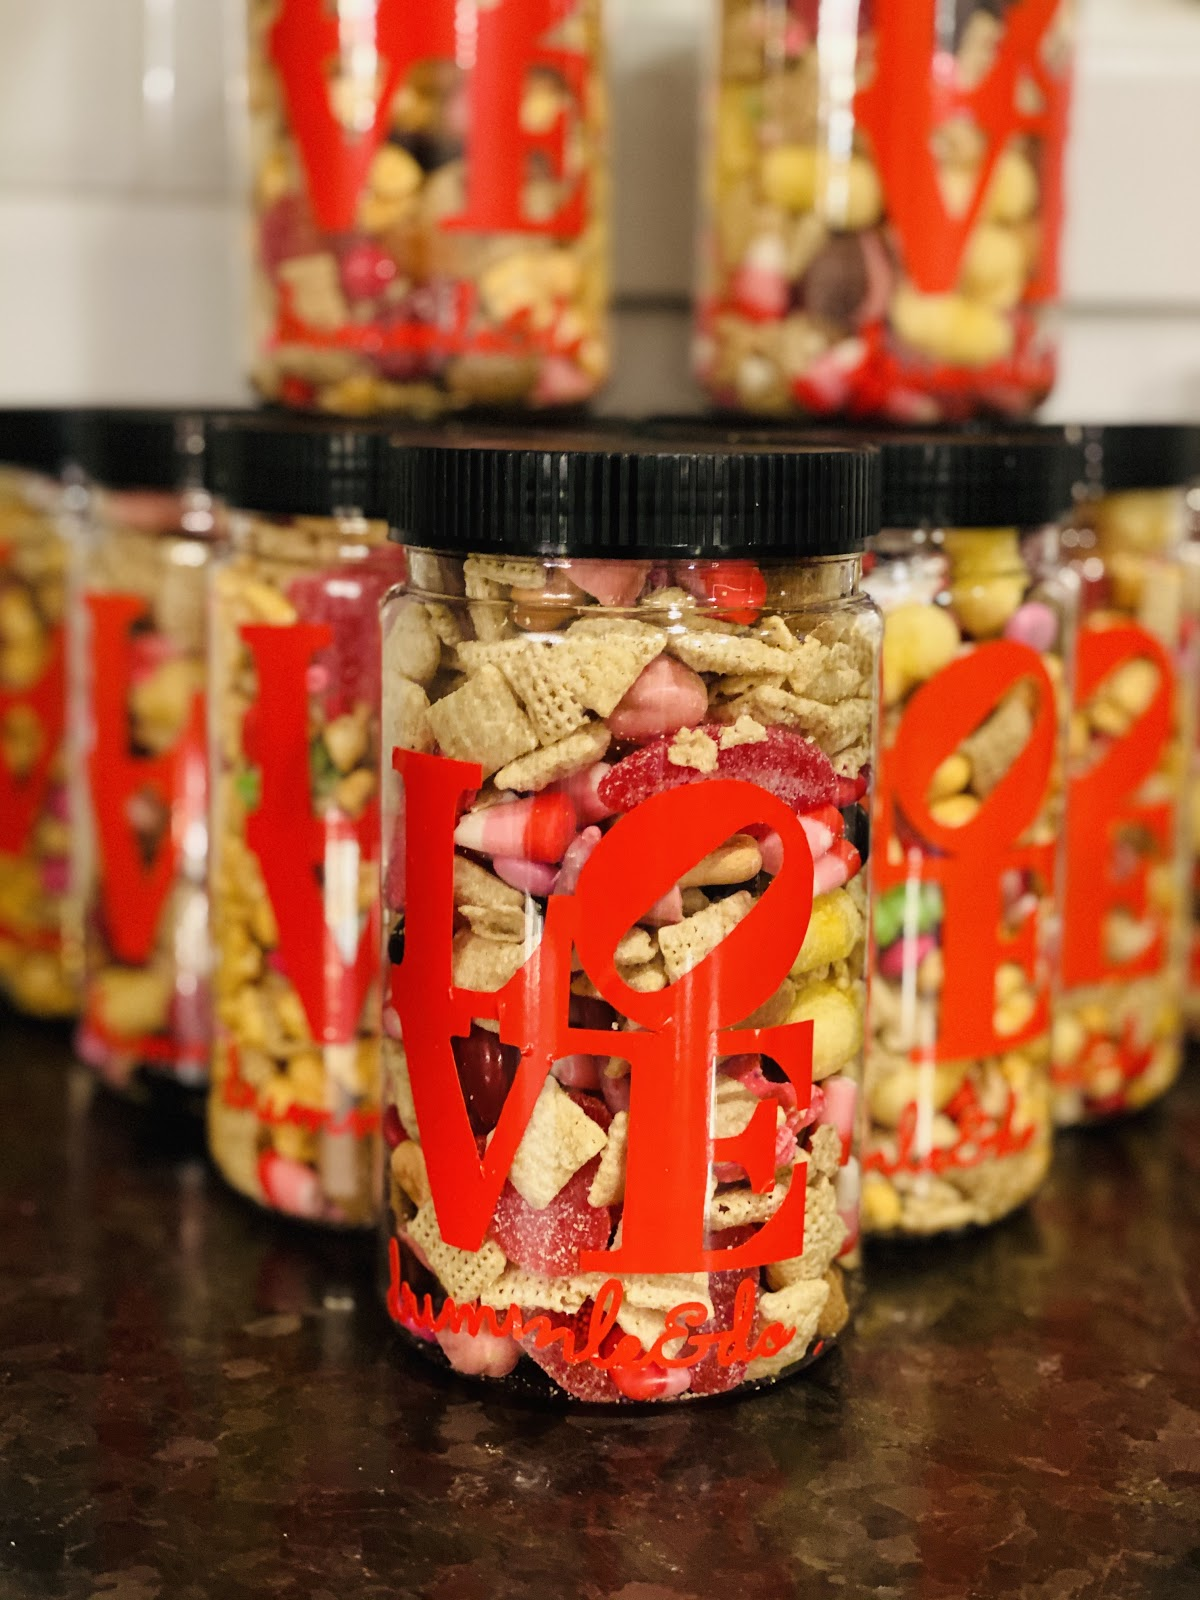 on-launching-a-made-to-order-snack-mixes-with-300-sold-jars-in-one-month